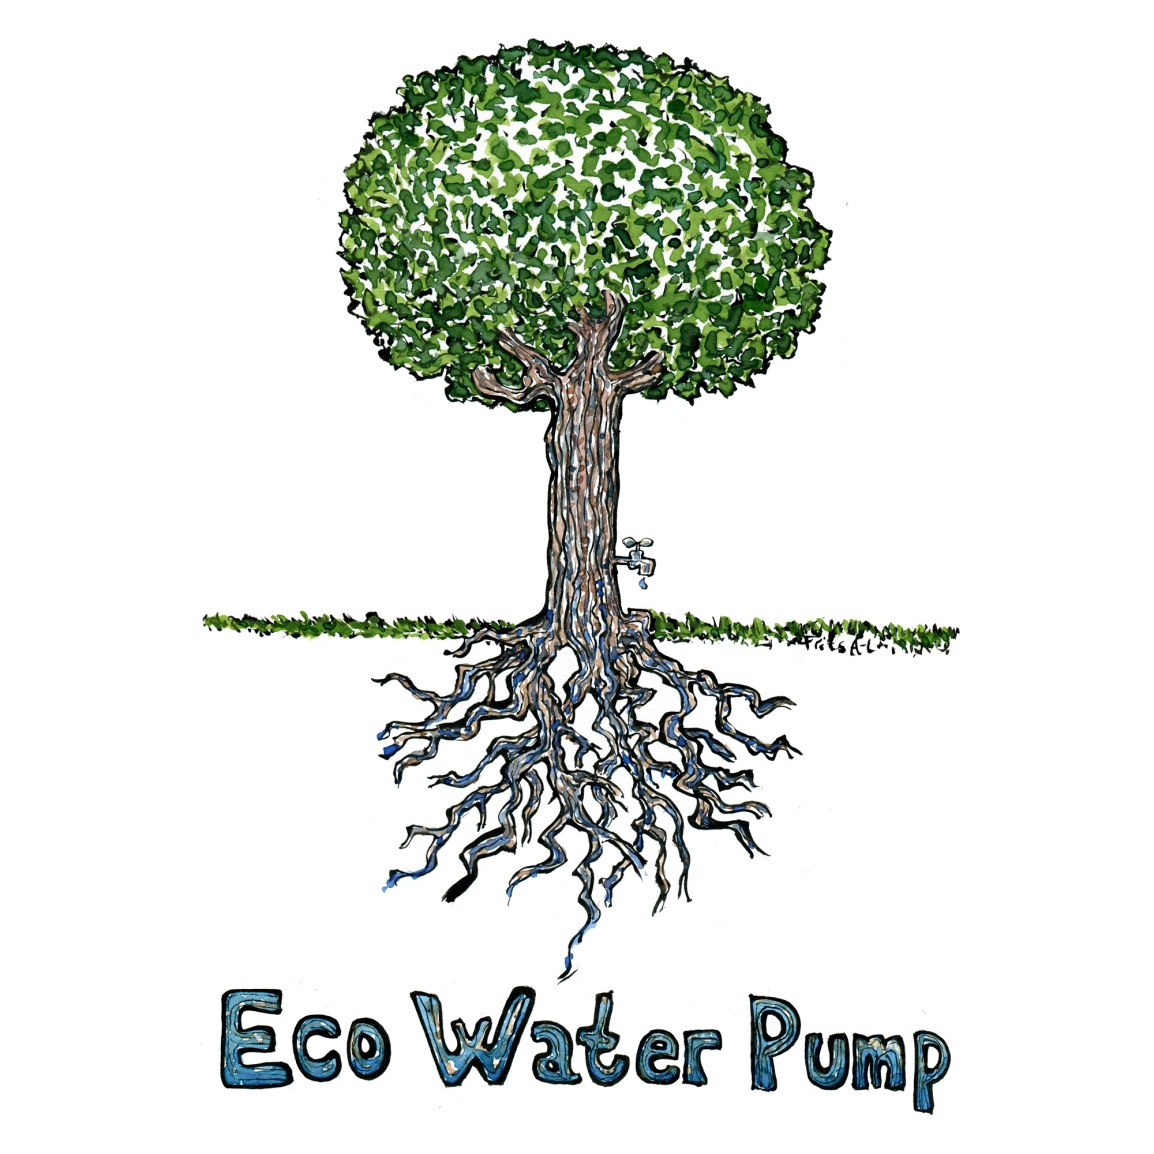 Eco water pump